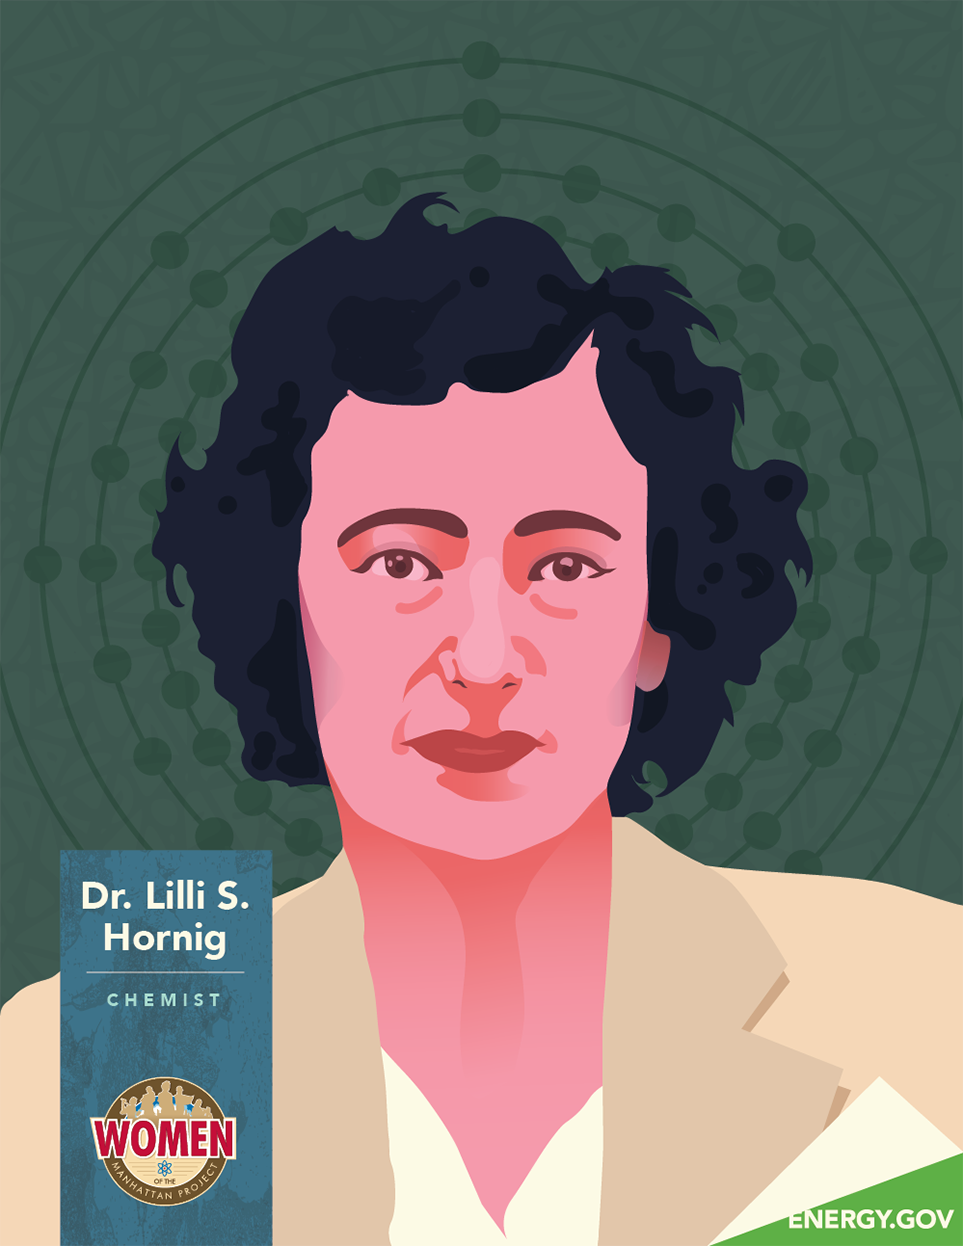 Dr Lilli Hornig illustration